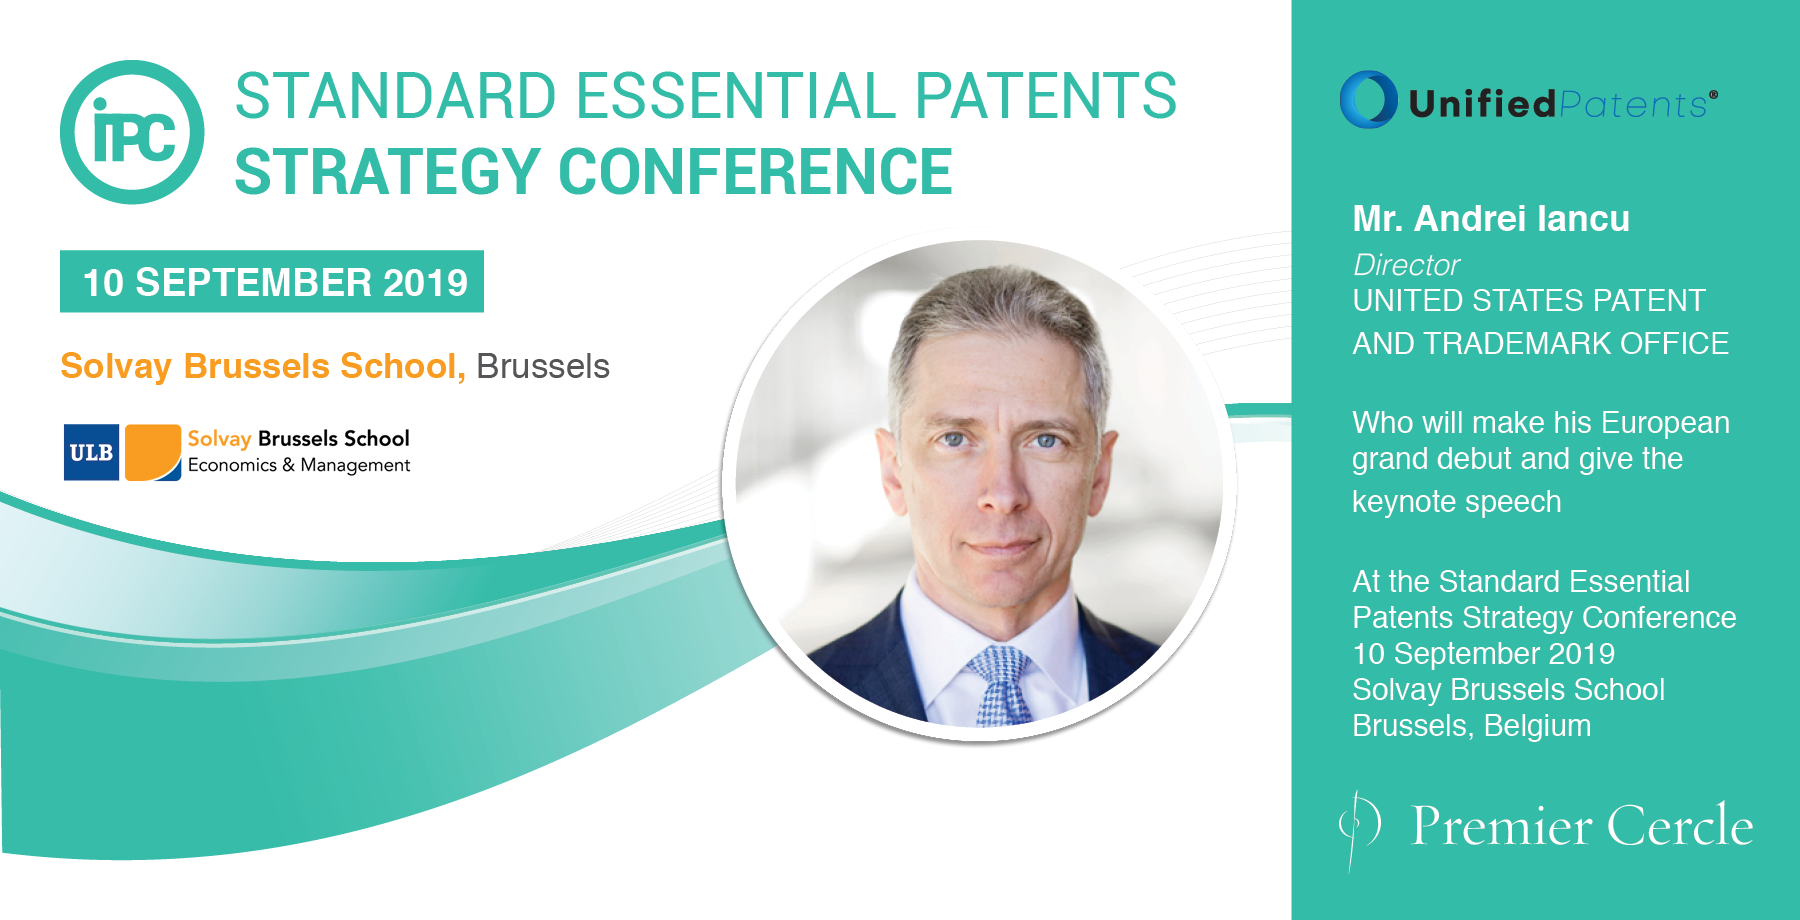 Andrei Iancu Director UNITED STATES PATENT AND TRADEMARK OFFICE